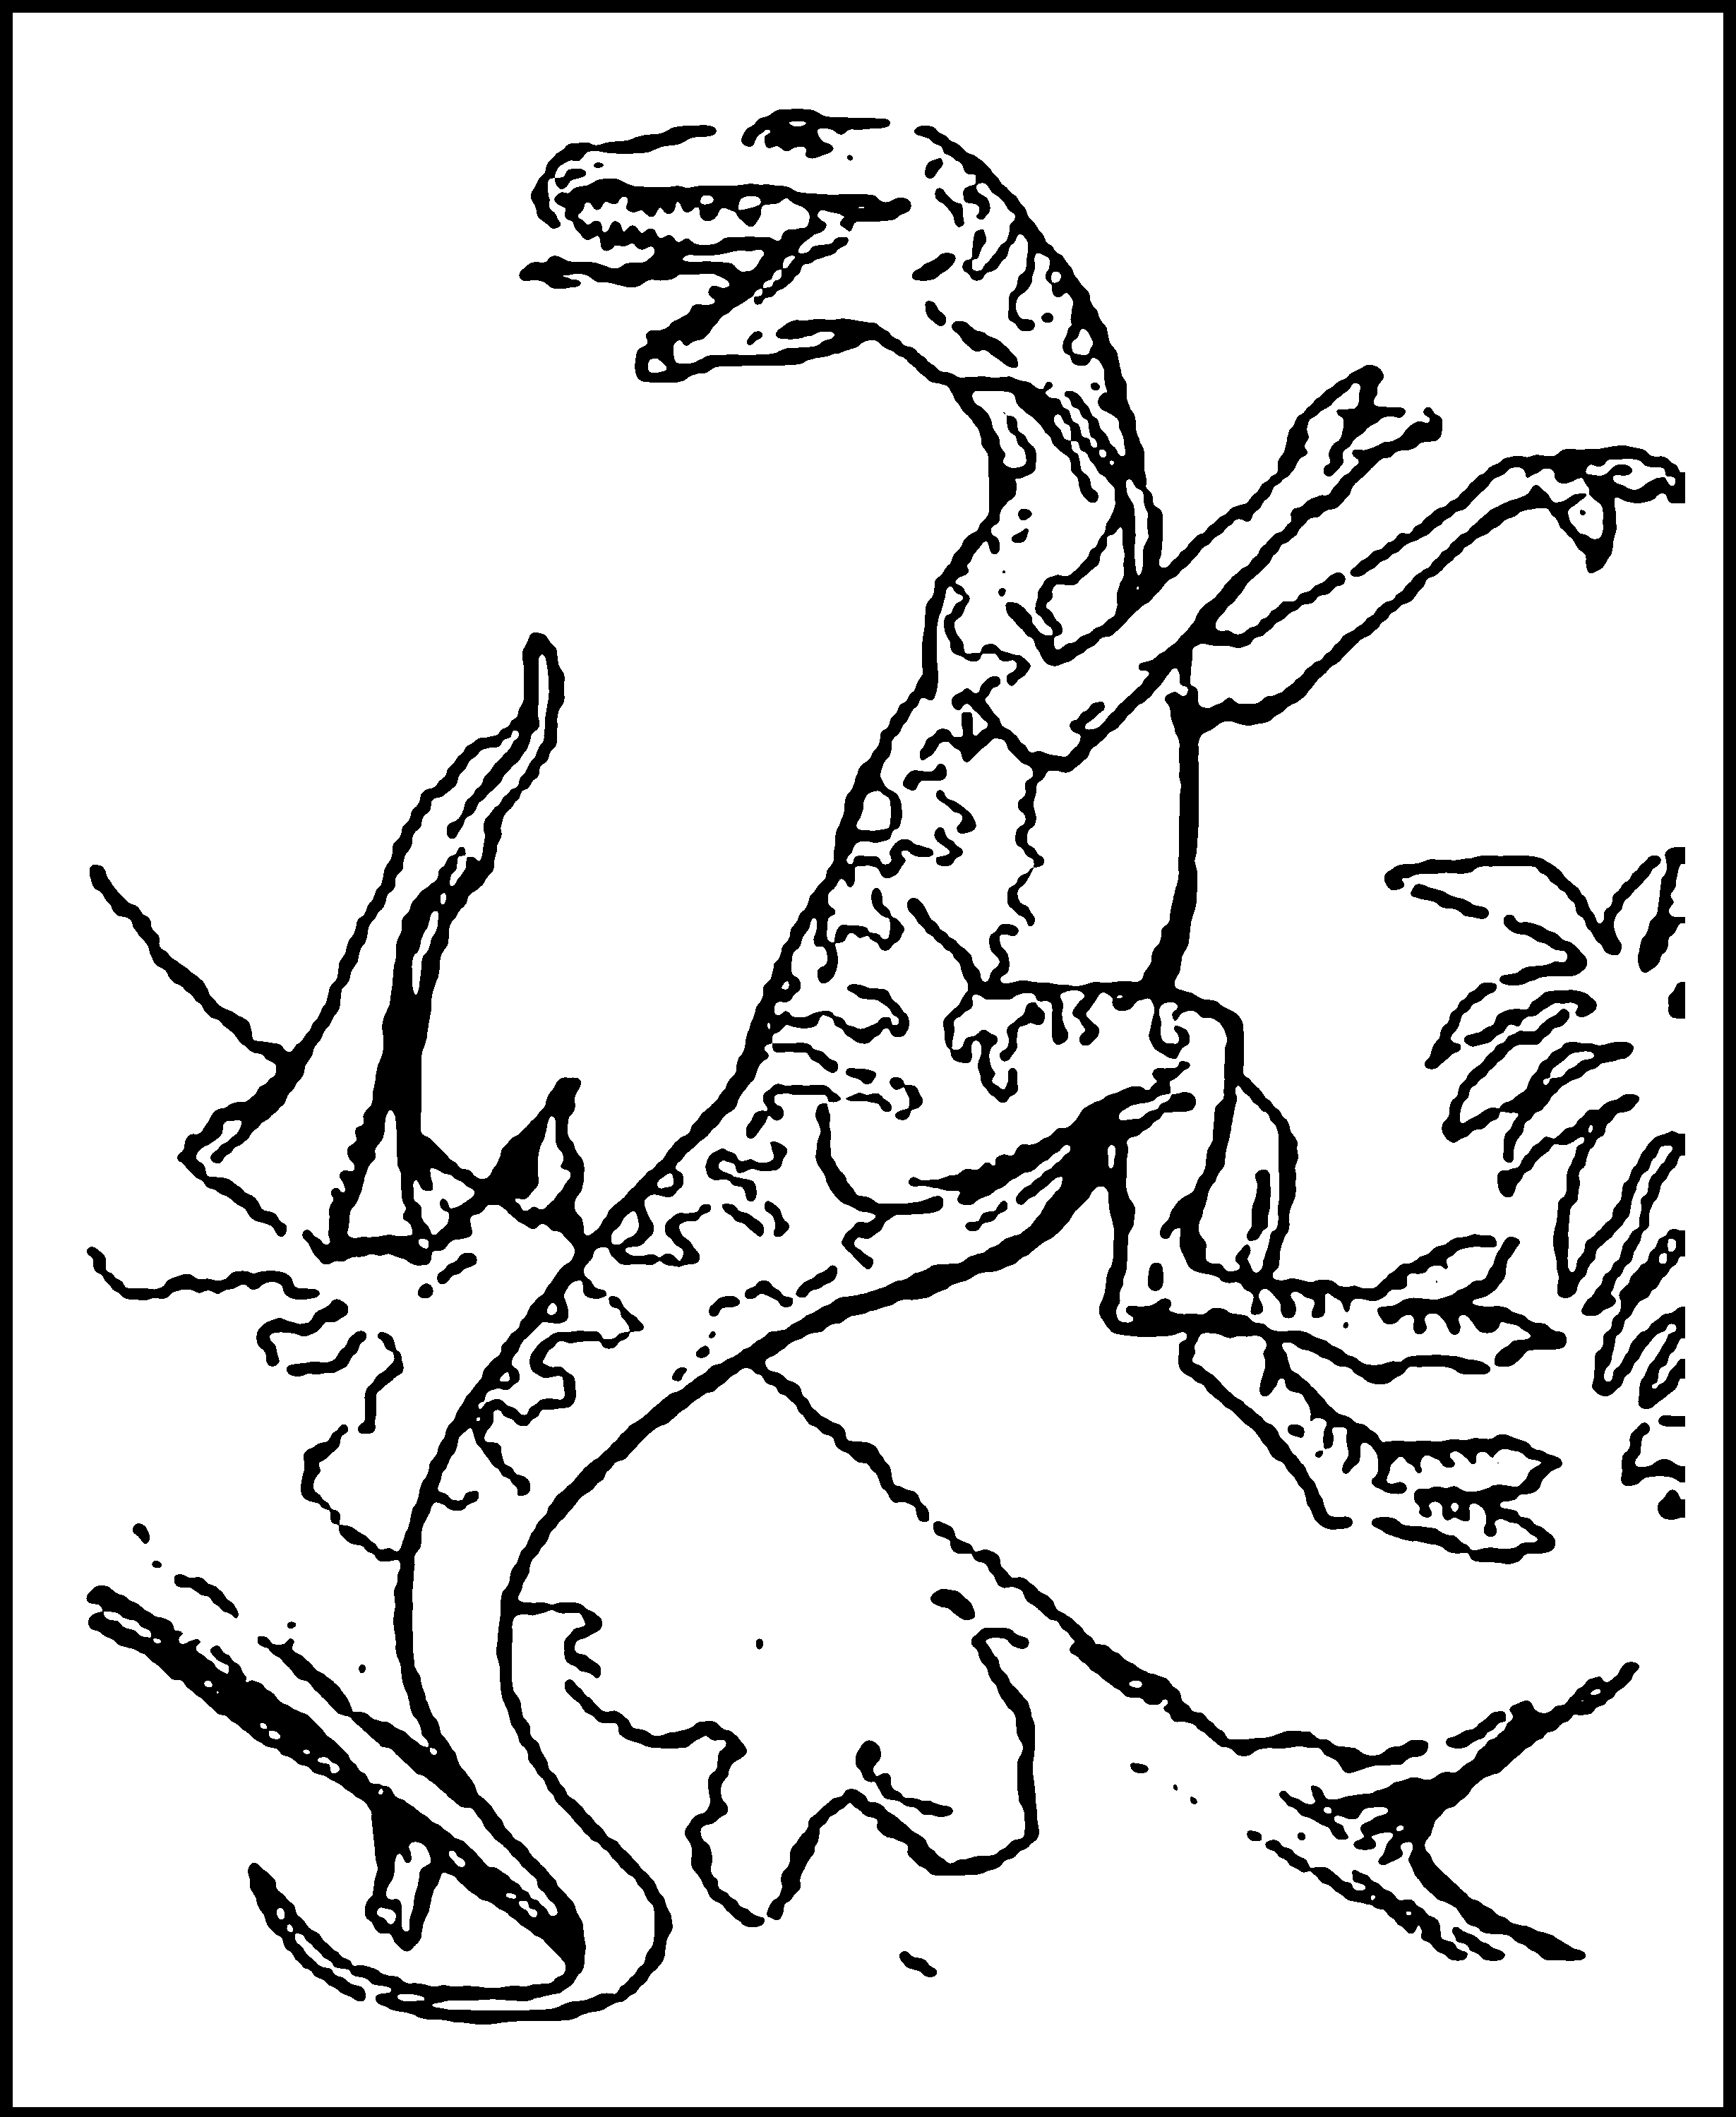 Dinosaur coloring pages to color online - Dinosaur Coloring Pages Printable